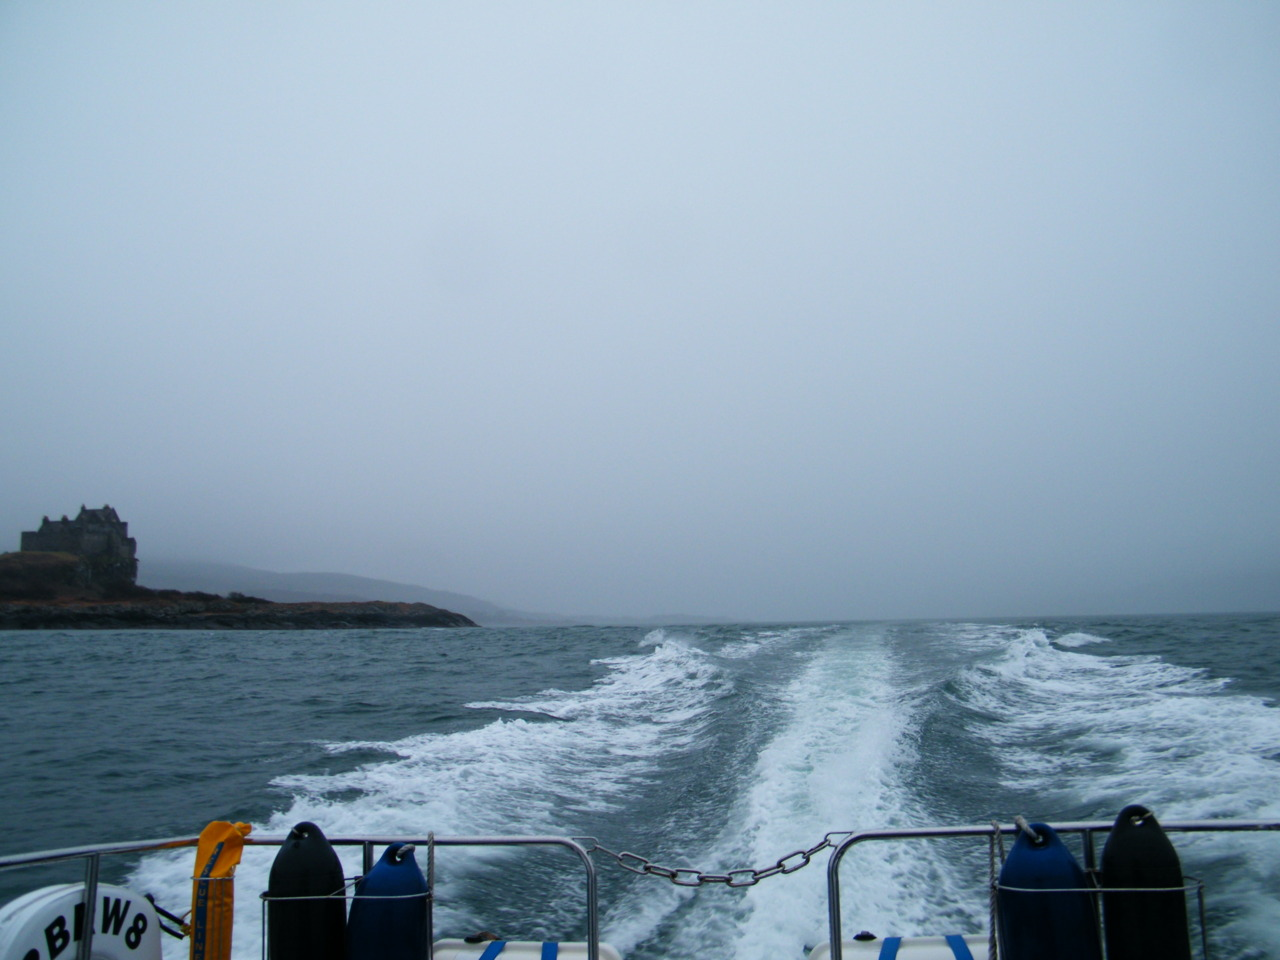 Heading back to base, looking up the Sound of Mull with Duart Castle in view.